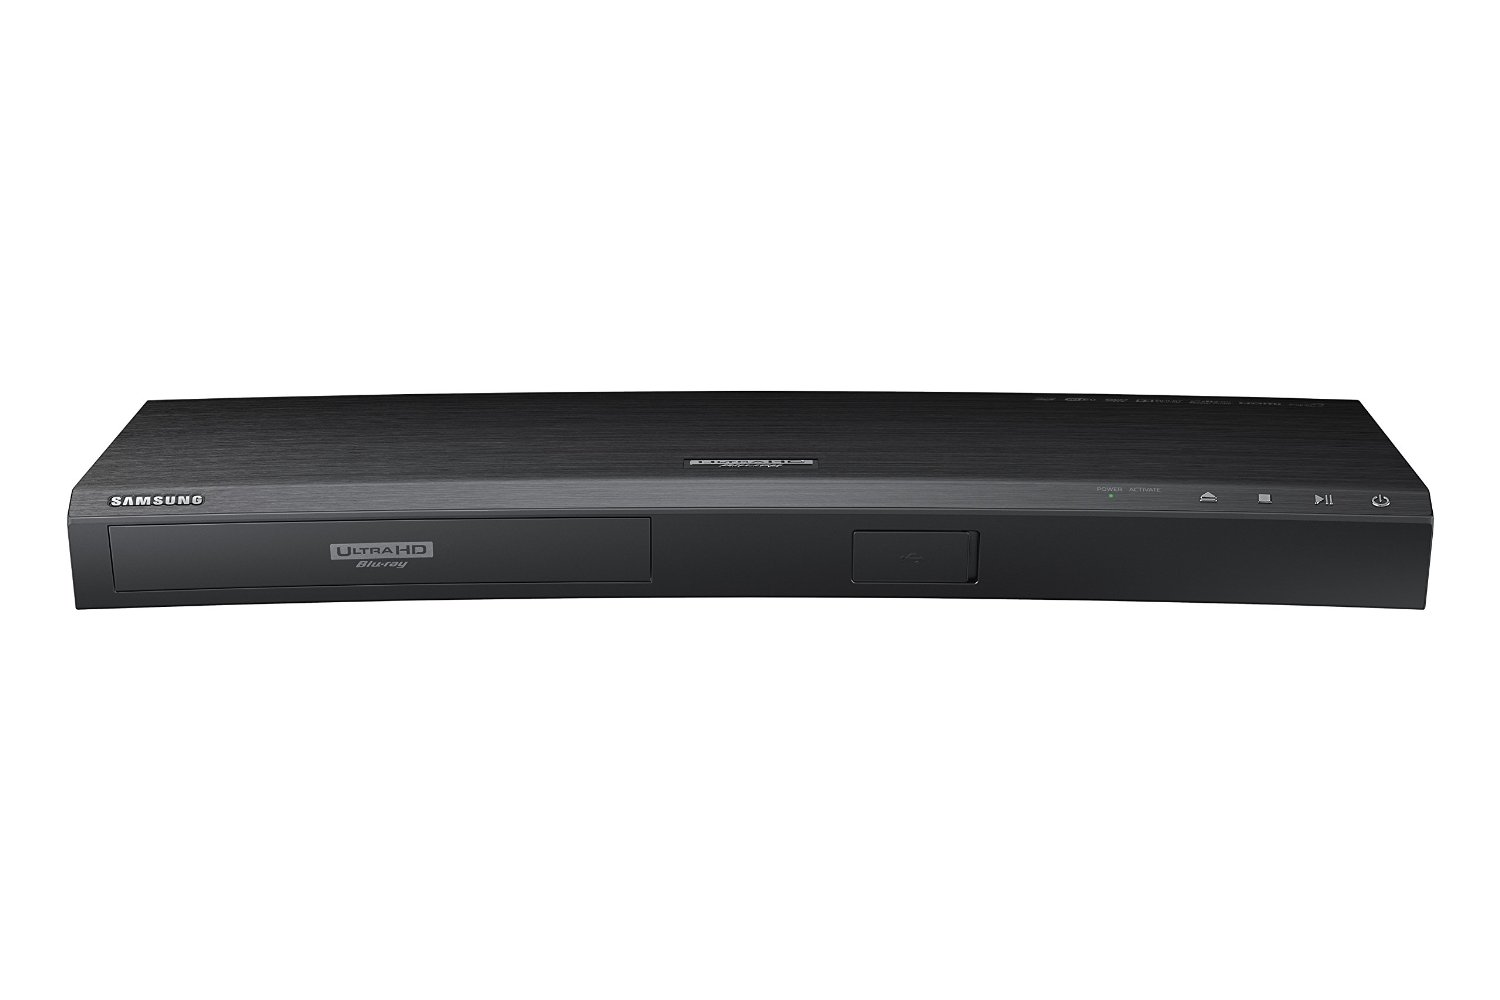 Samsung 3D Wi-Fi 4K Ultra HD Blu-Ray Player